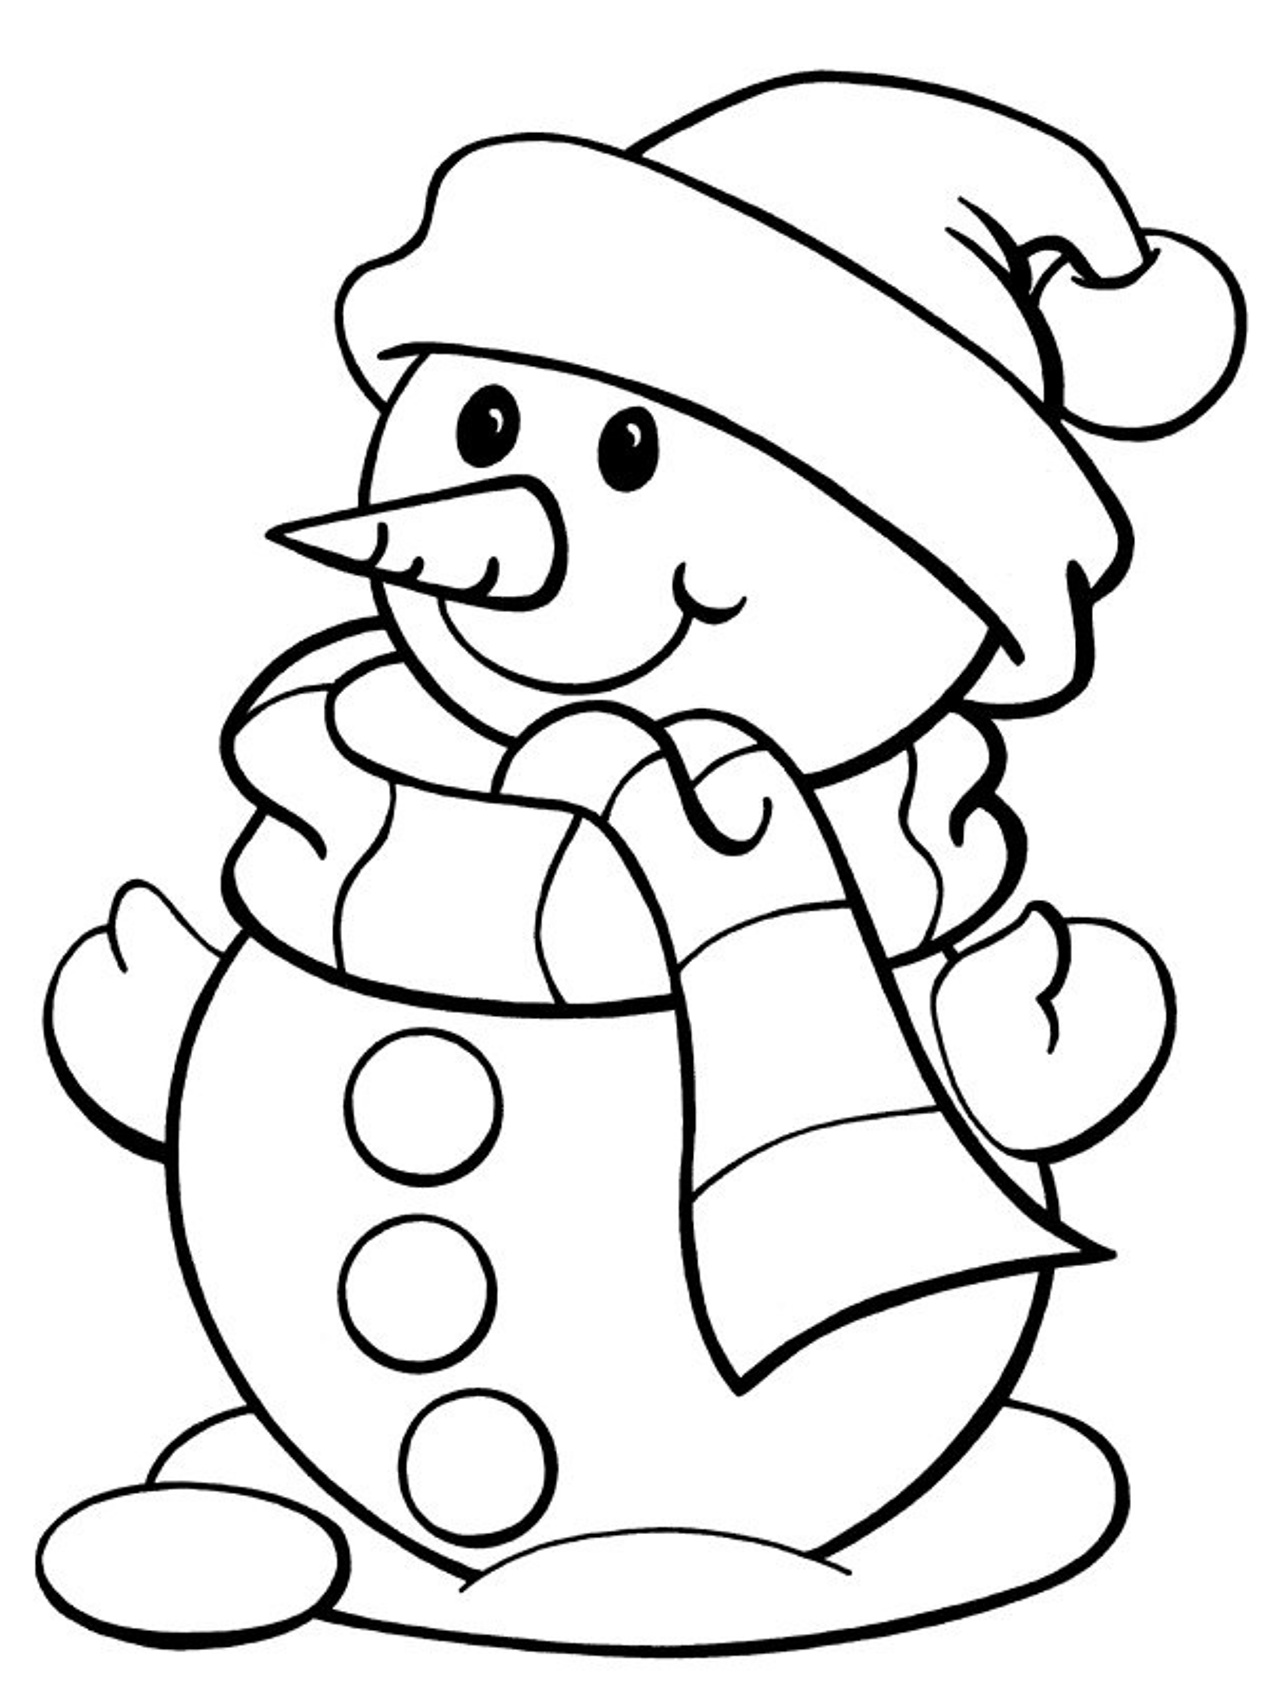 coloring pages to color and print - 23 winter season coloring pages print color craft